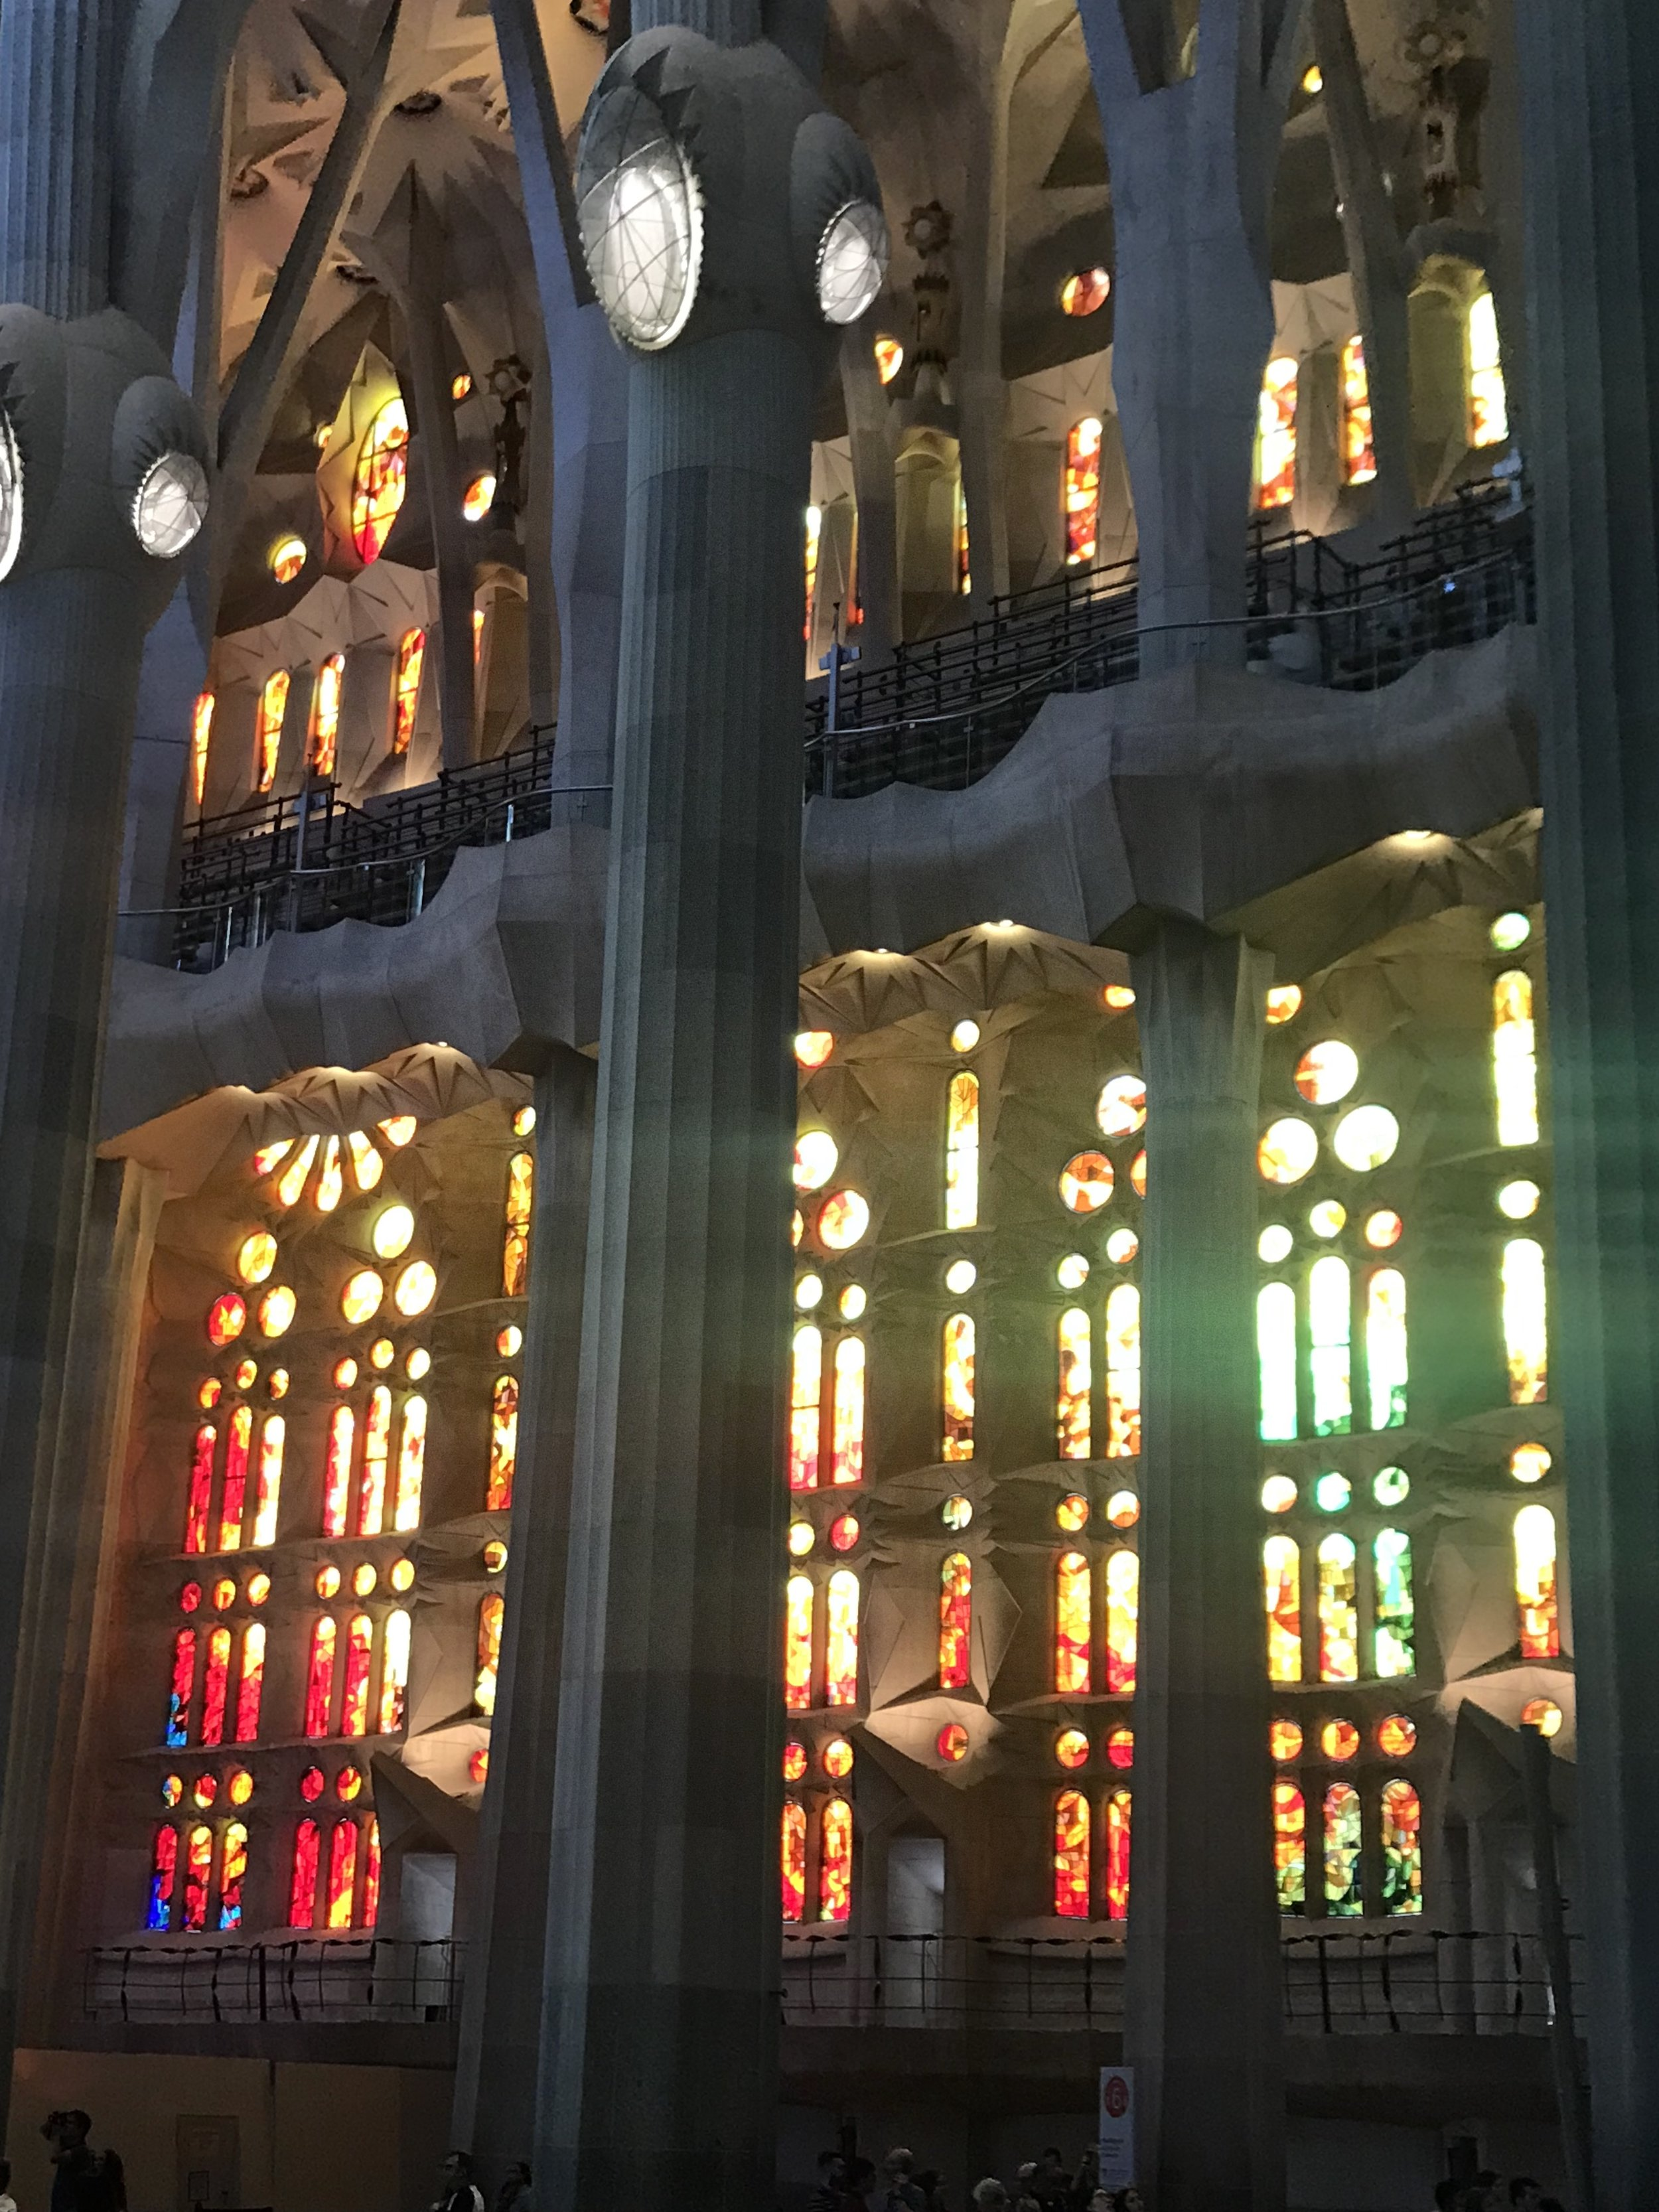 A photo of the stunning interior of Sagrada Familia, which doesn't come close to doing it justice